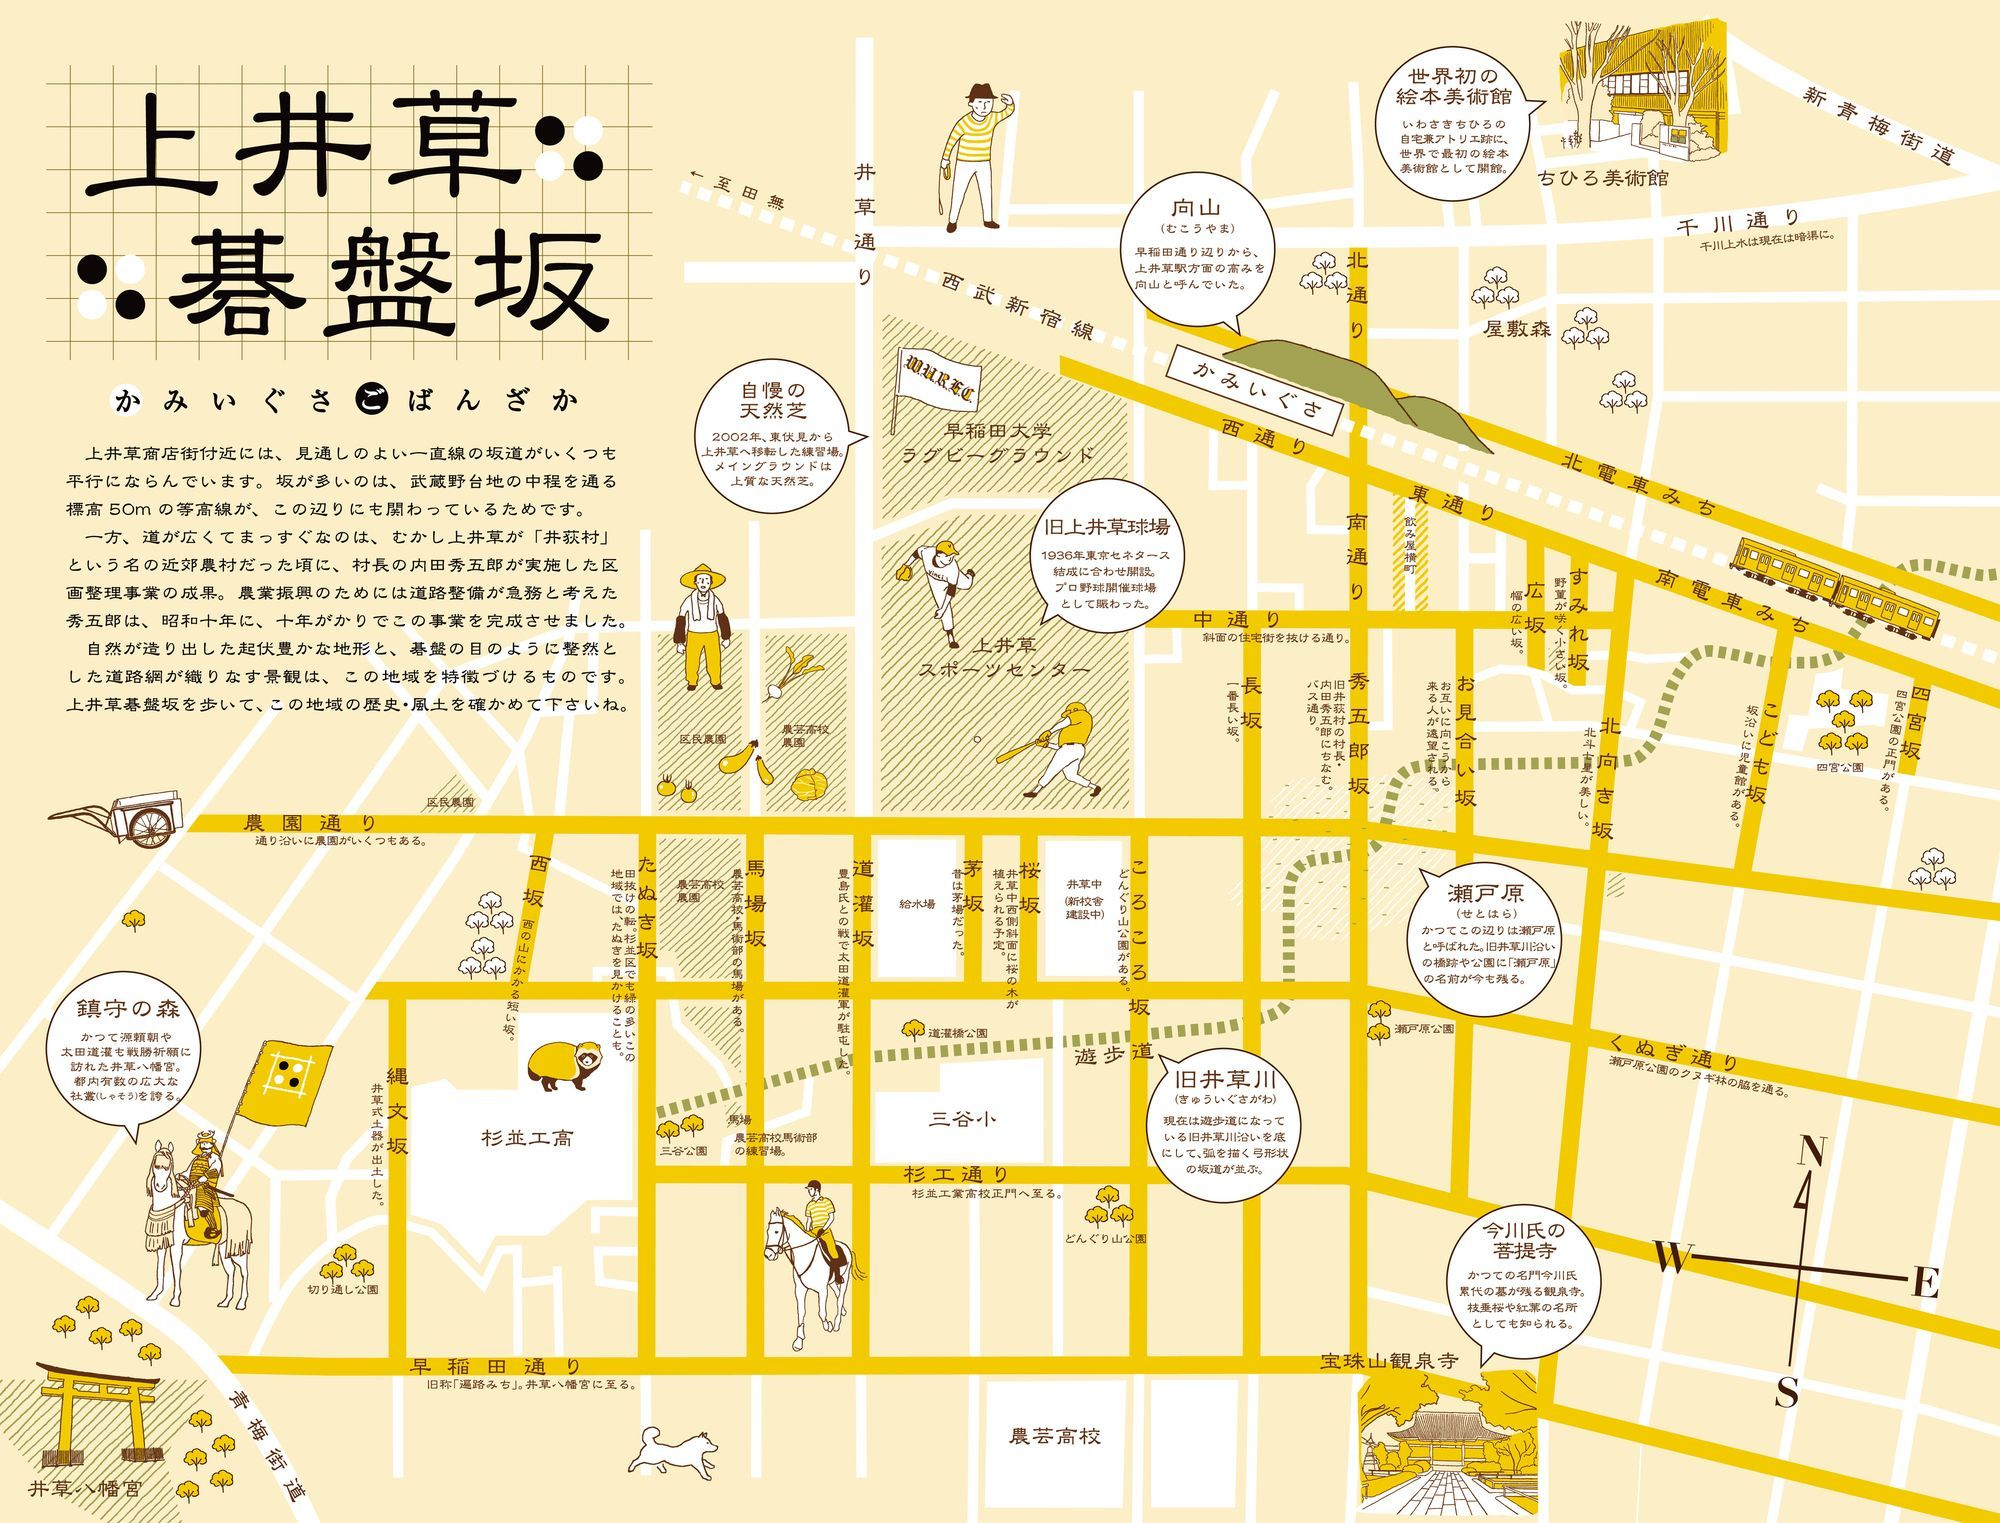 かみいぐさ碁盤坂 map pinterest map design map and map diagram